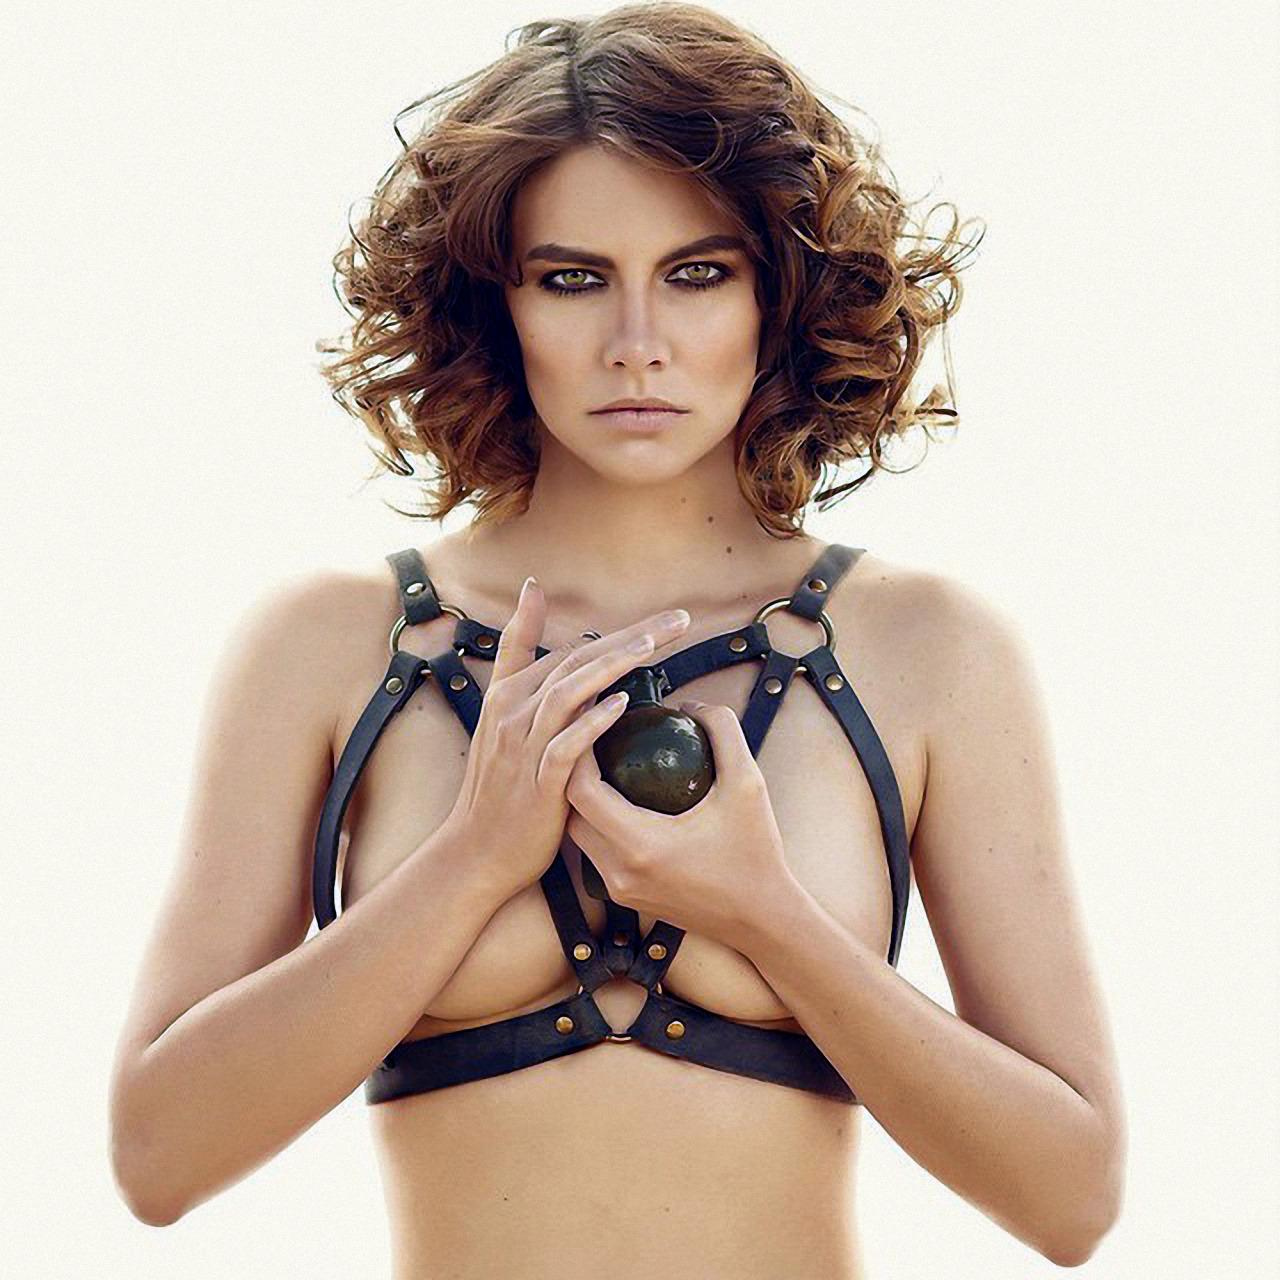 Lauren cohan nude the woman of your fantasy nude sexy